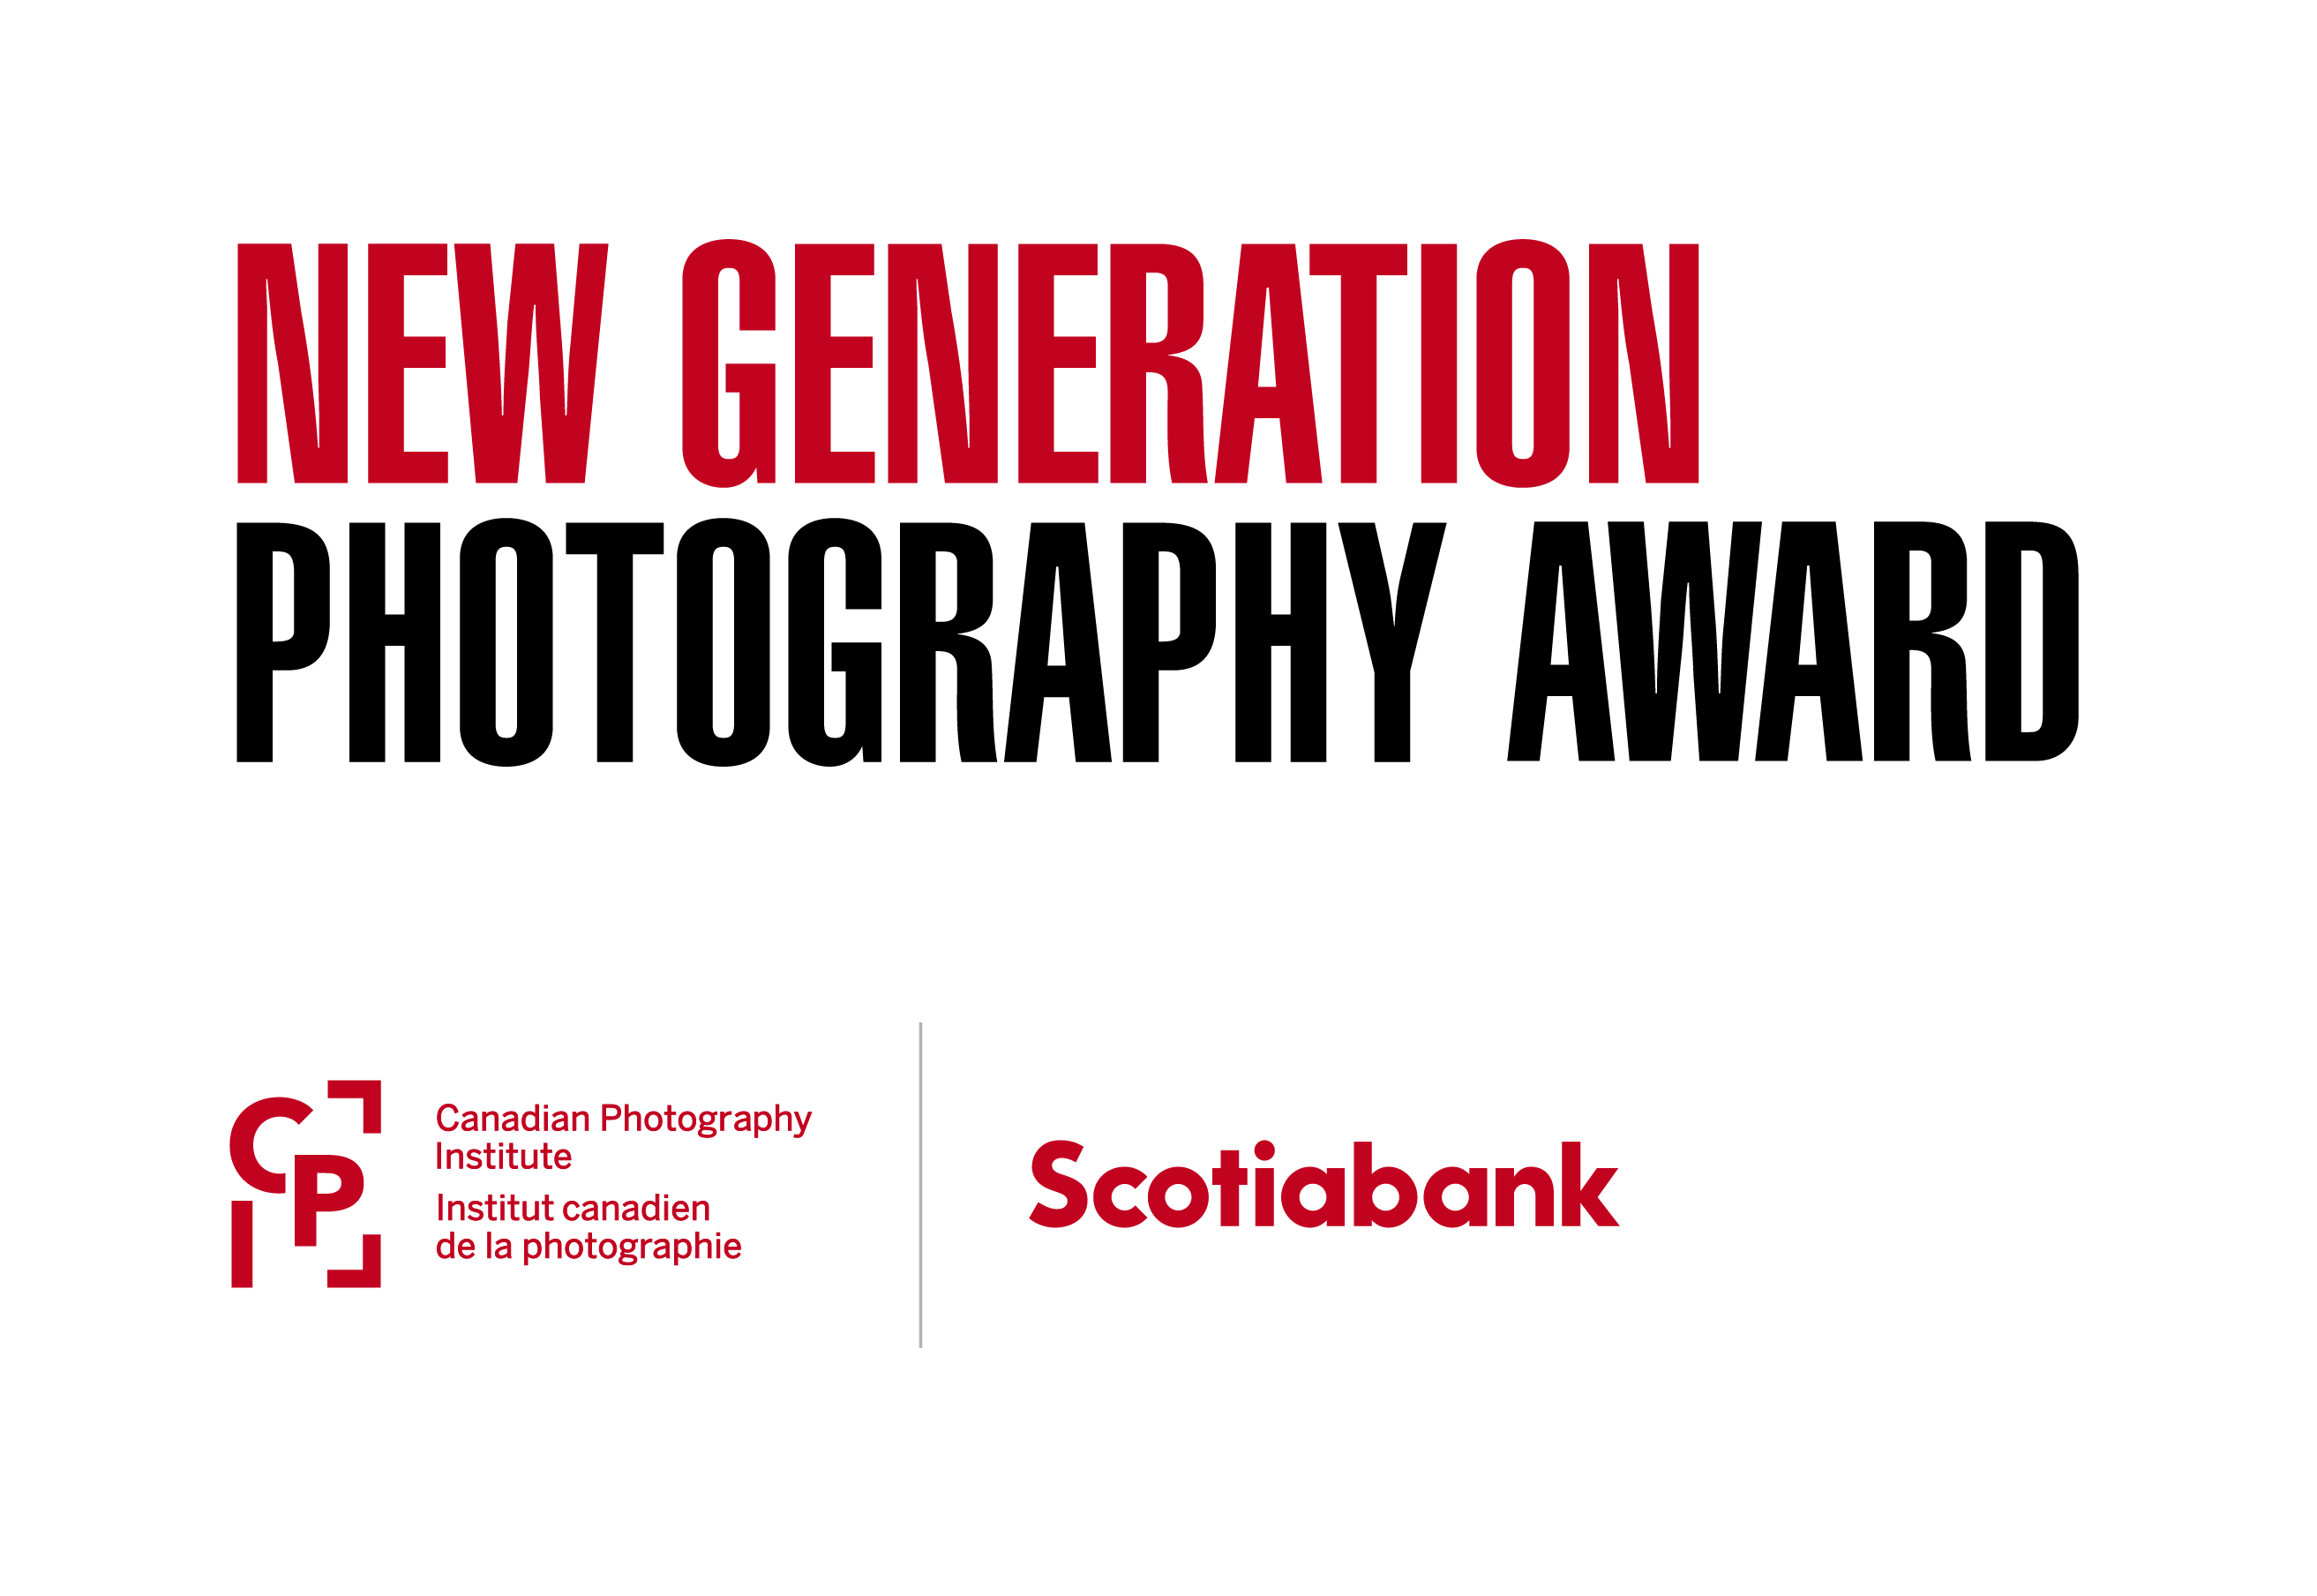 Canadian photography institution